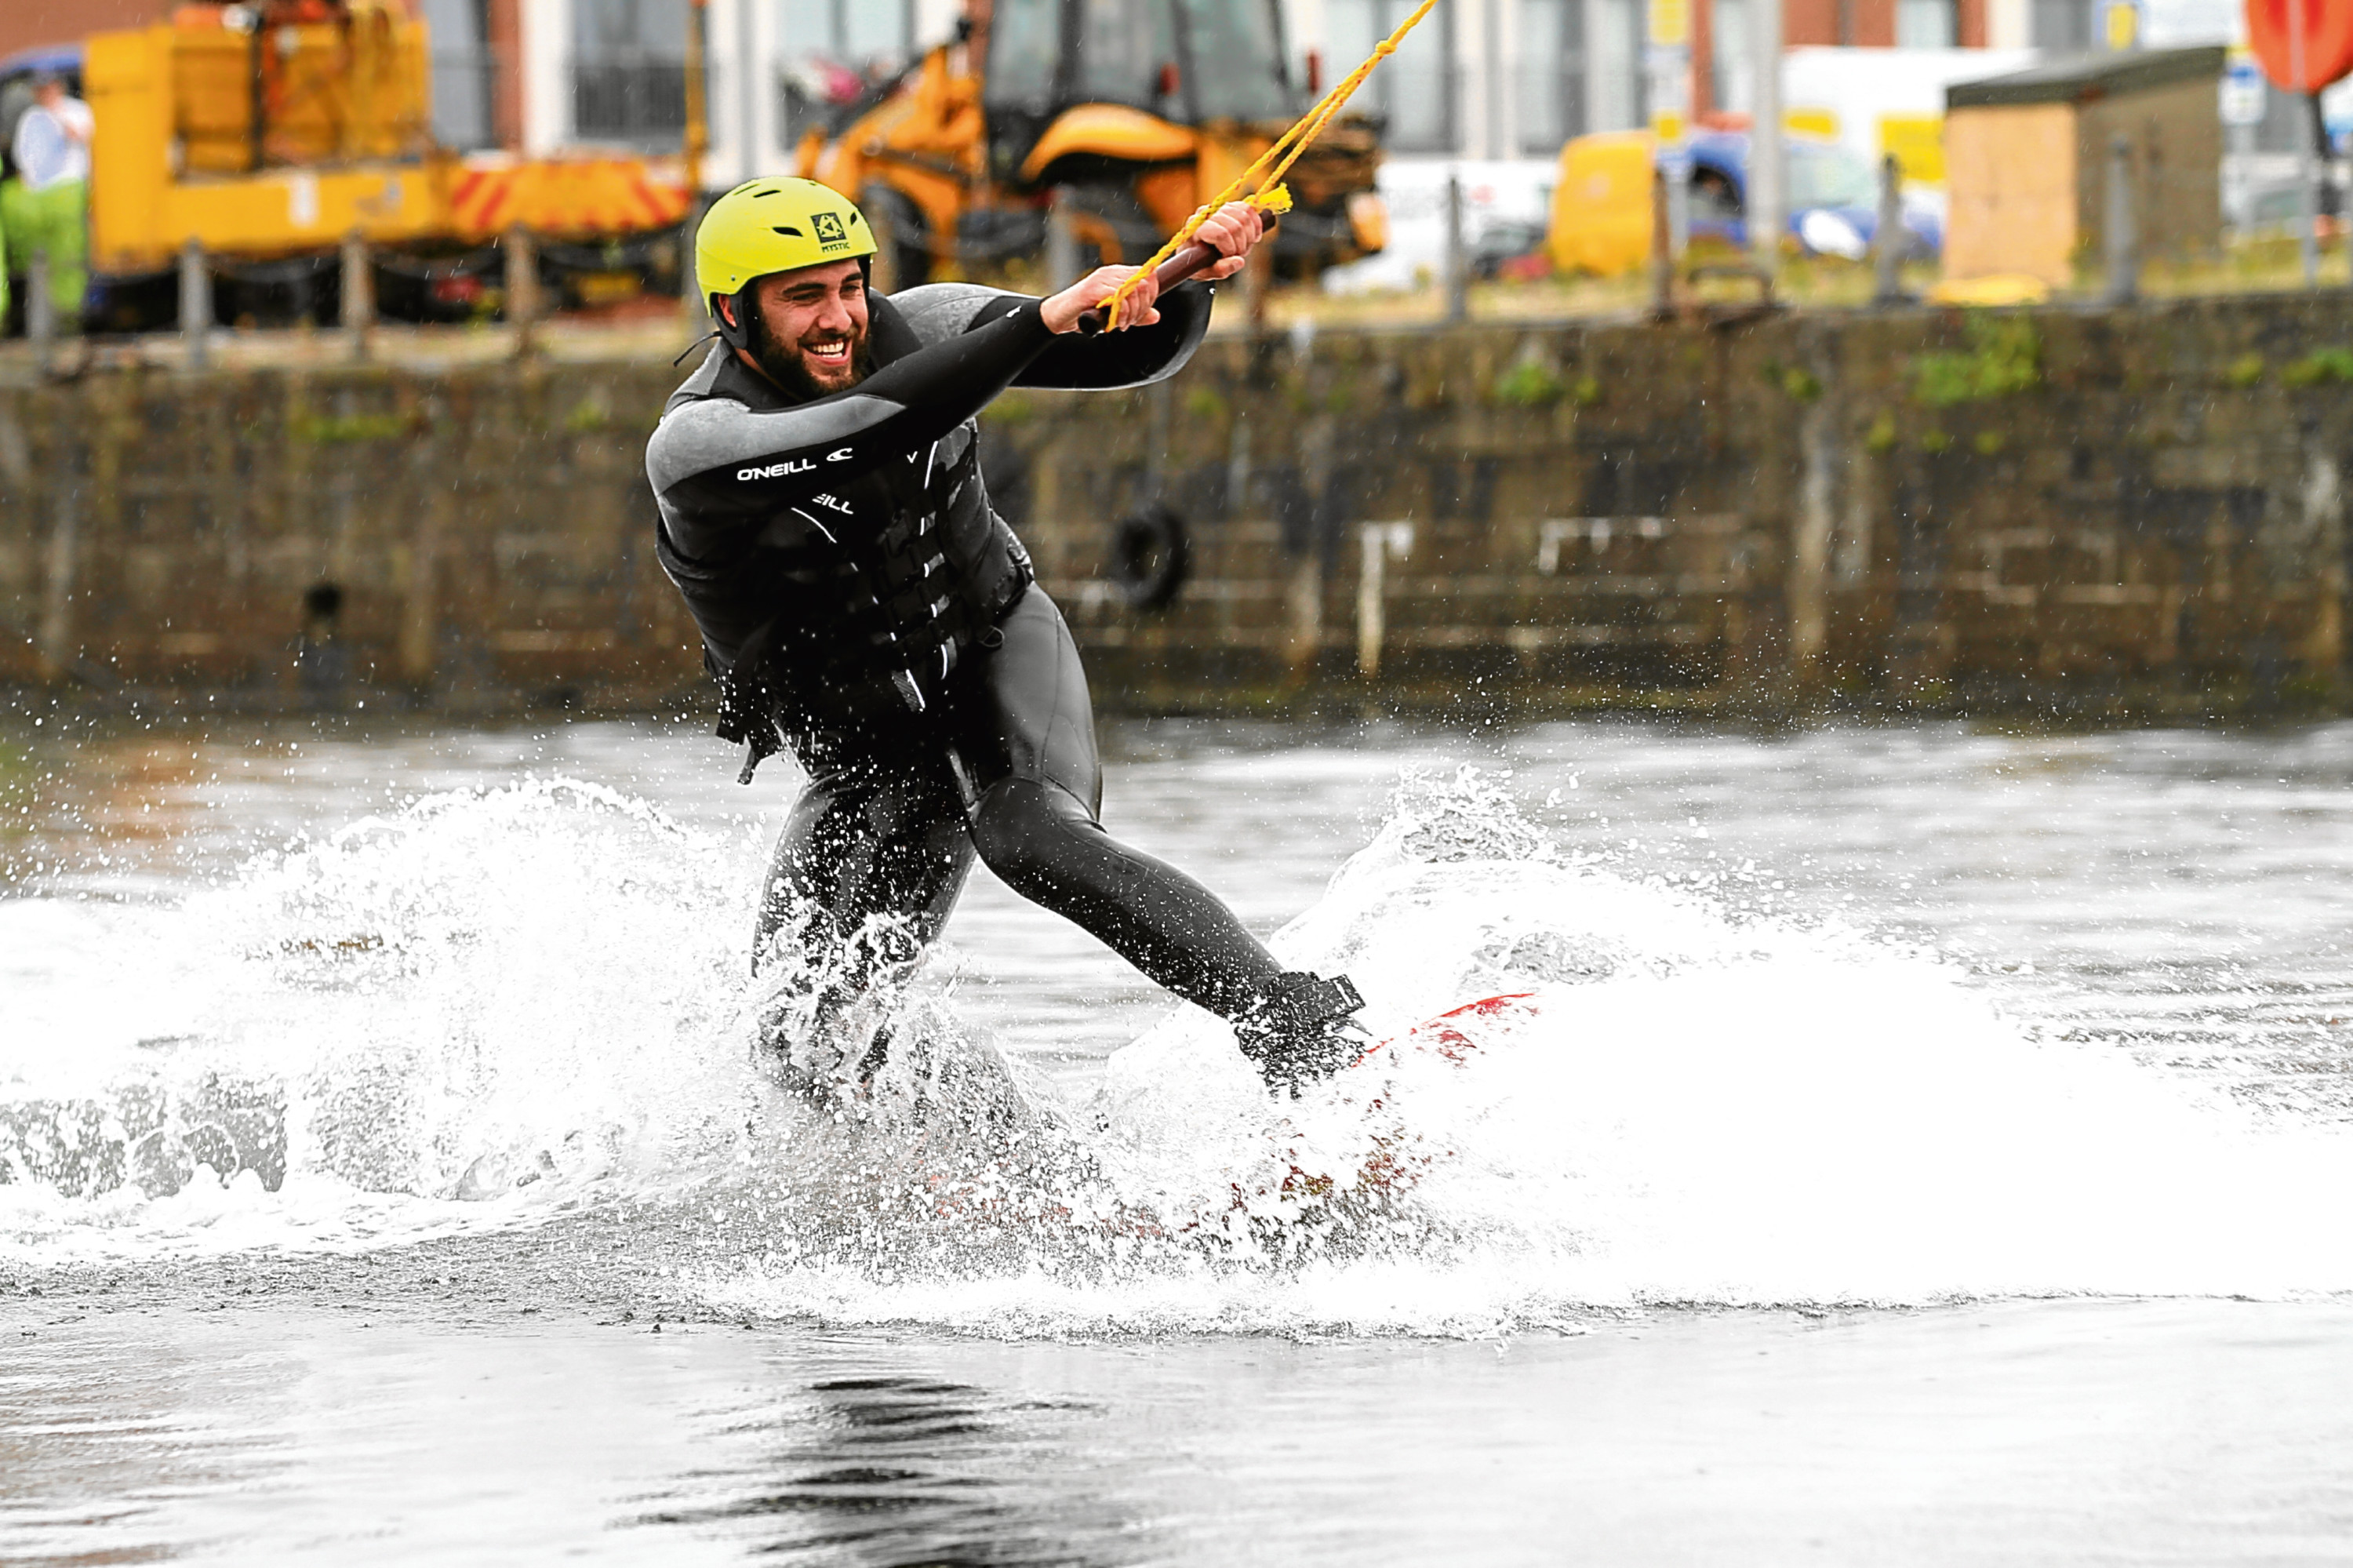 Tele reporter Adam Hill cuts a few moves on the wakeboard during the opening of the facility.